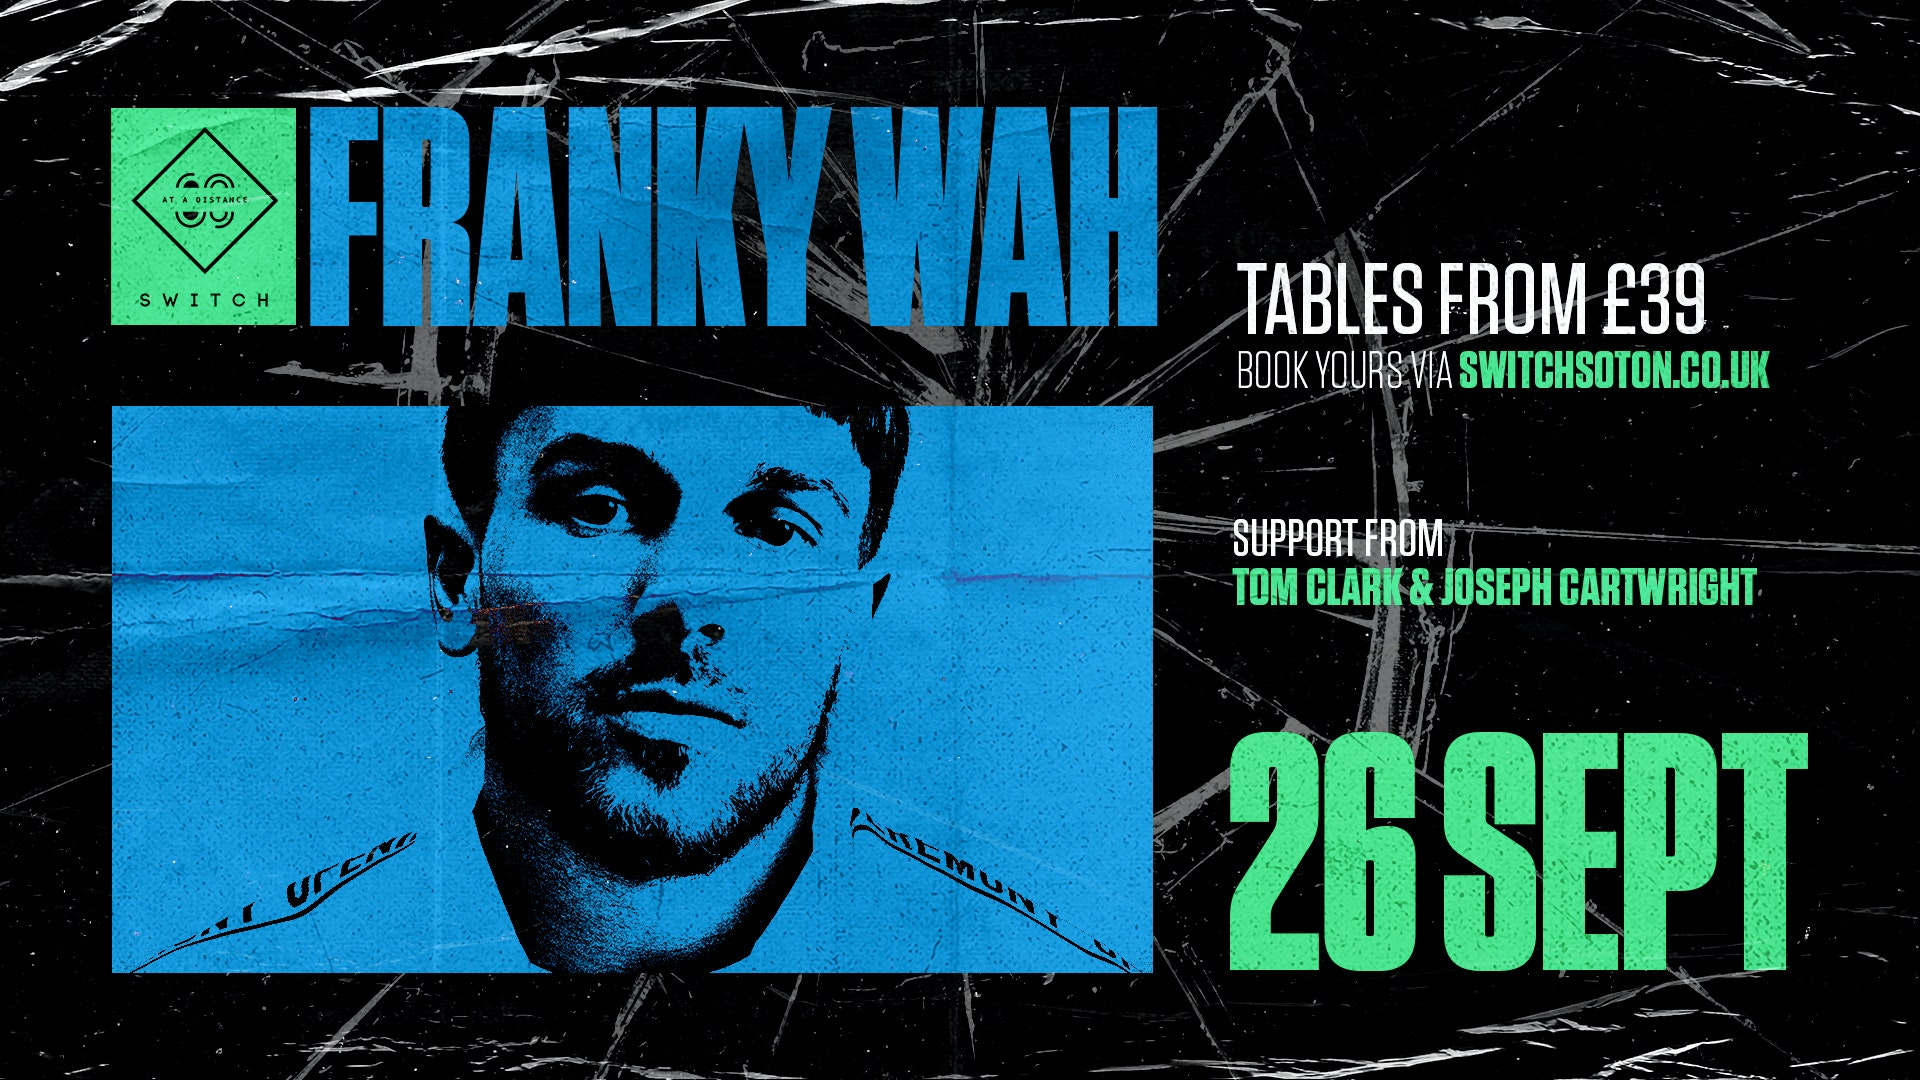 Warehouse presents: Franky Wah